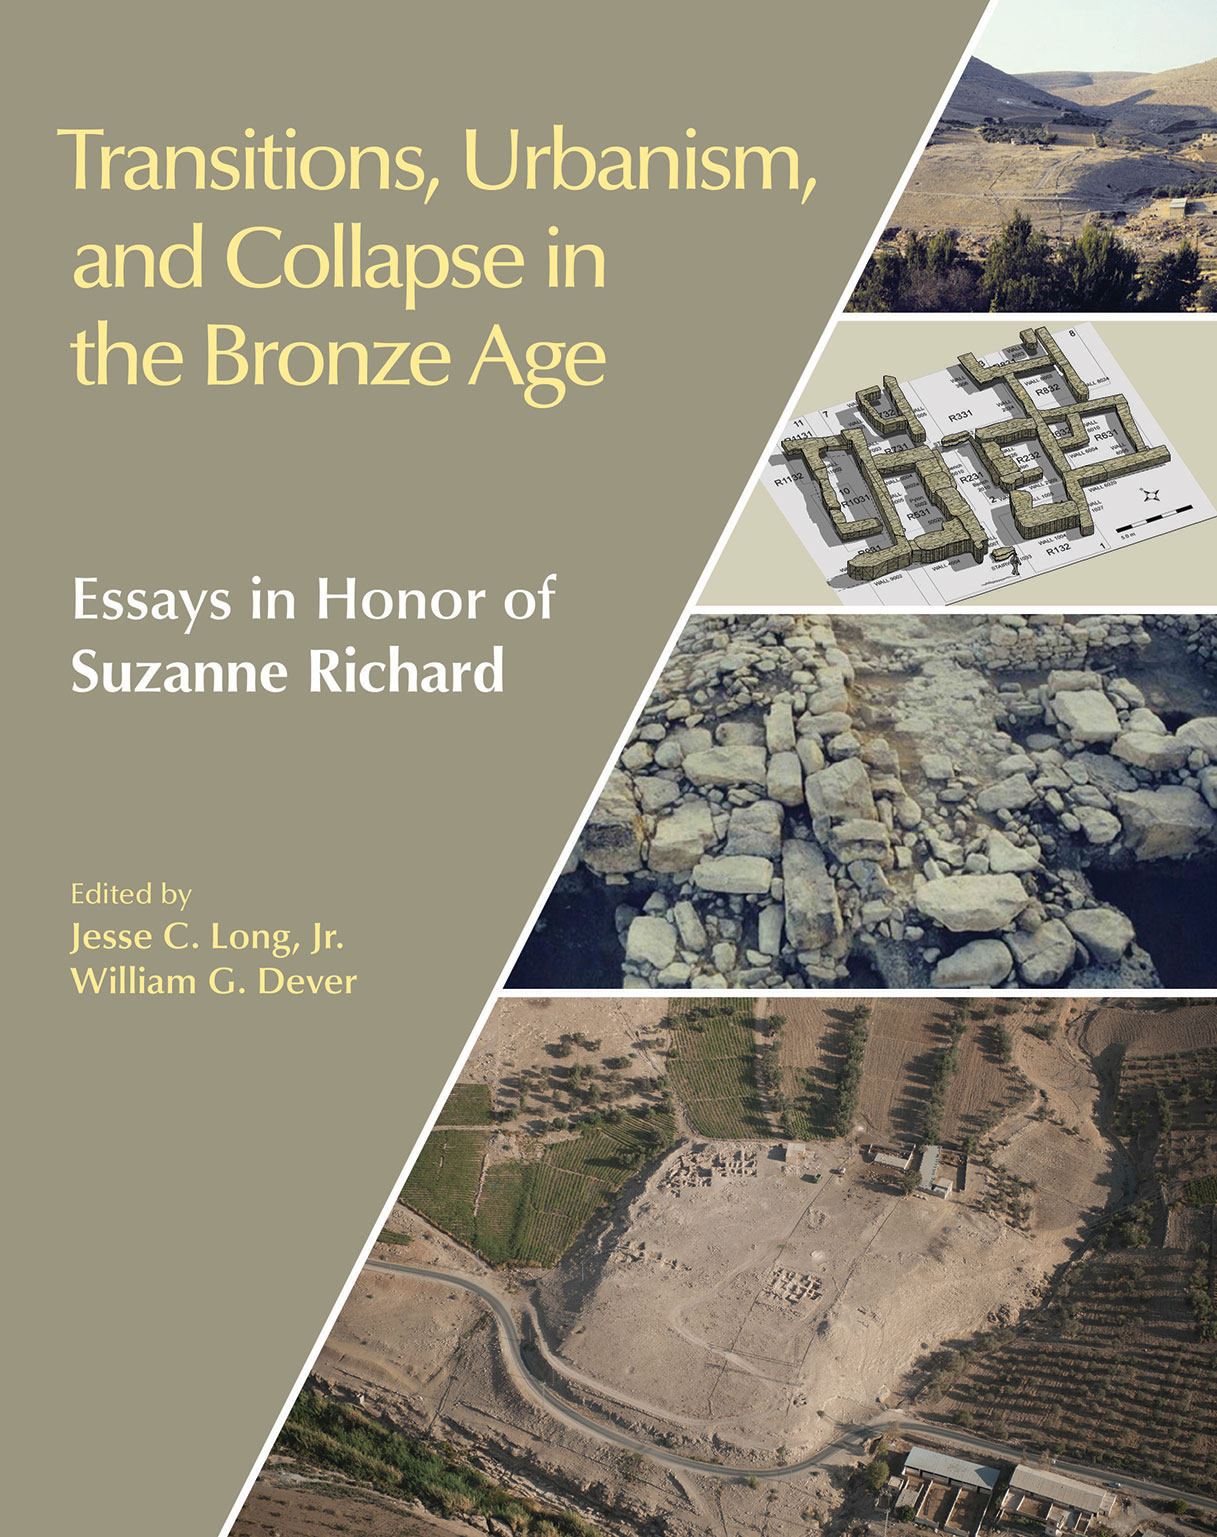 Transitions, Urbanism, and Collapse in the Bronze Age